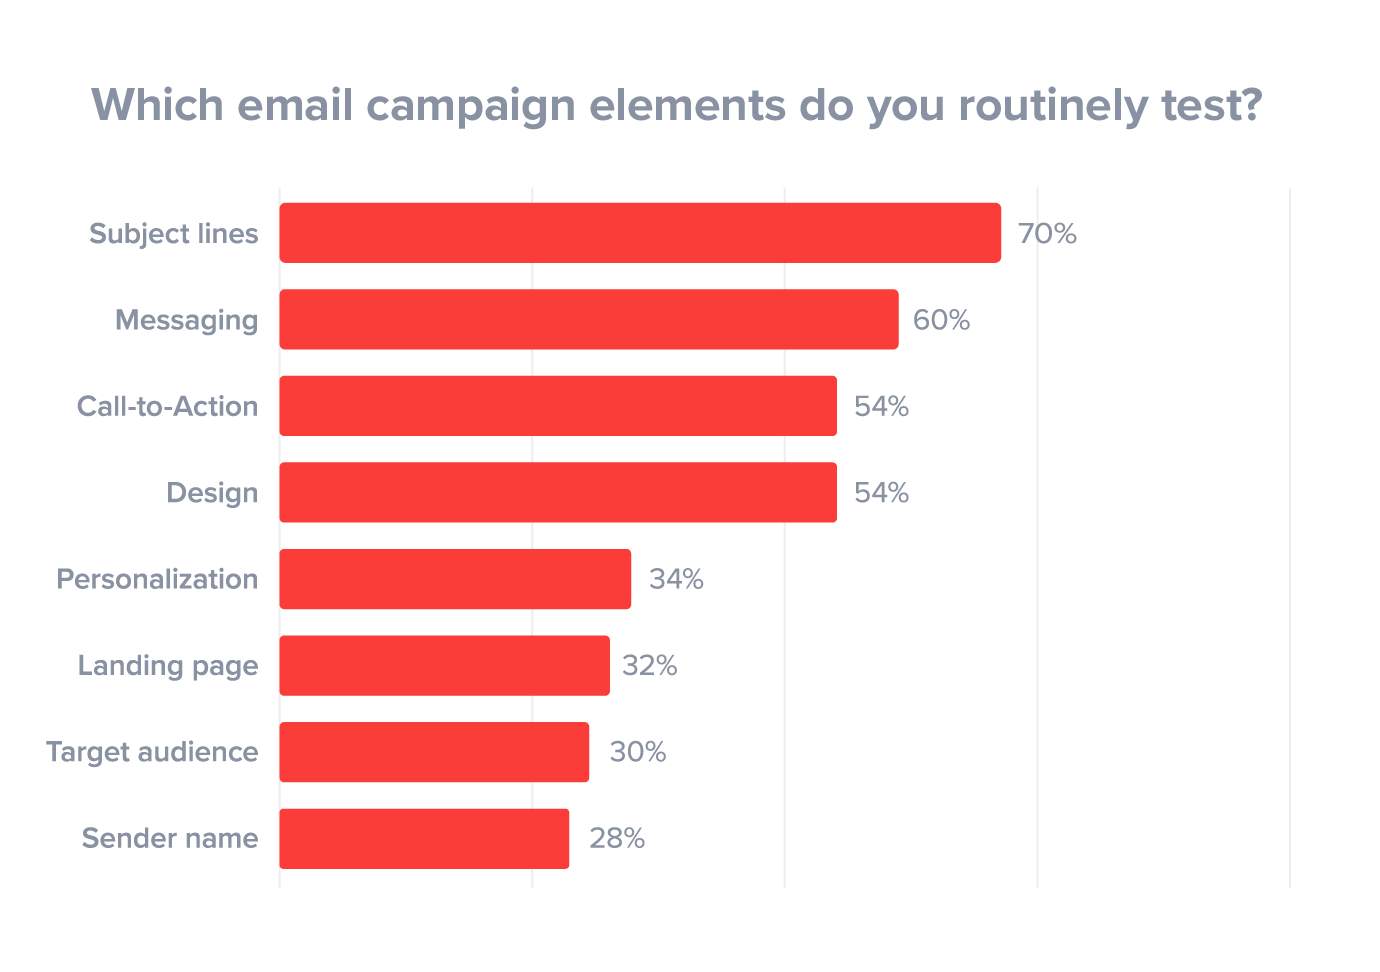 Subject line most common form of testing in email marketing